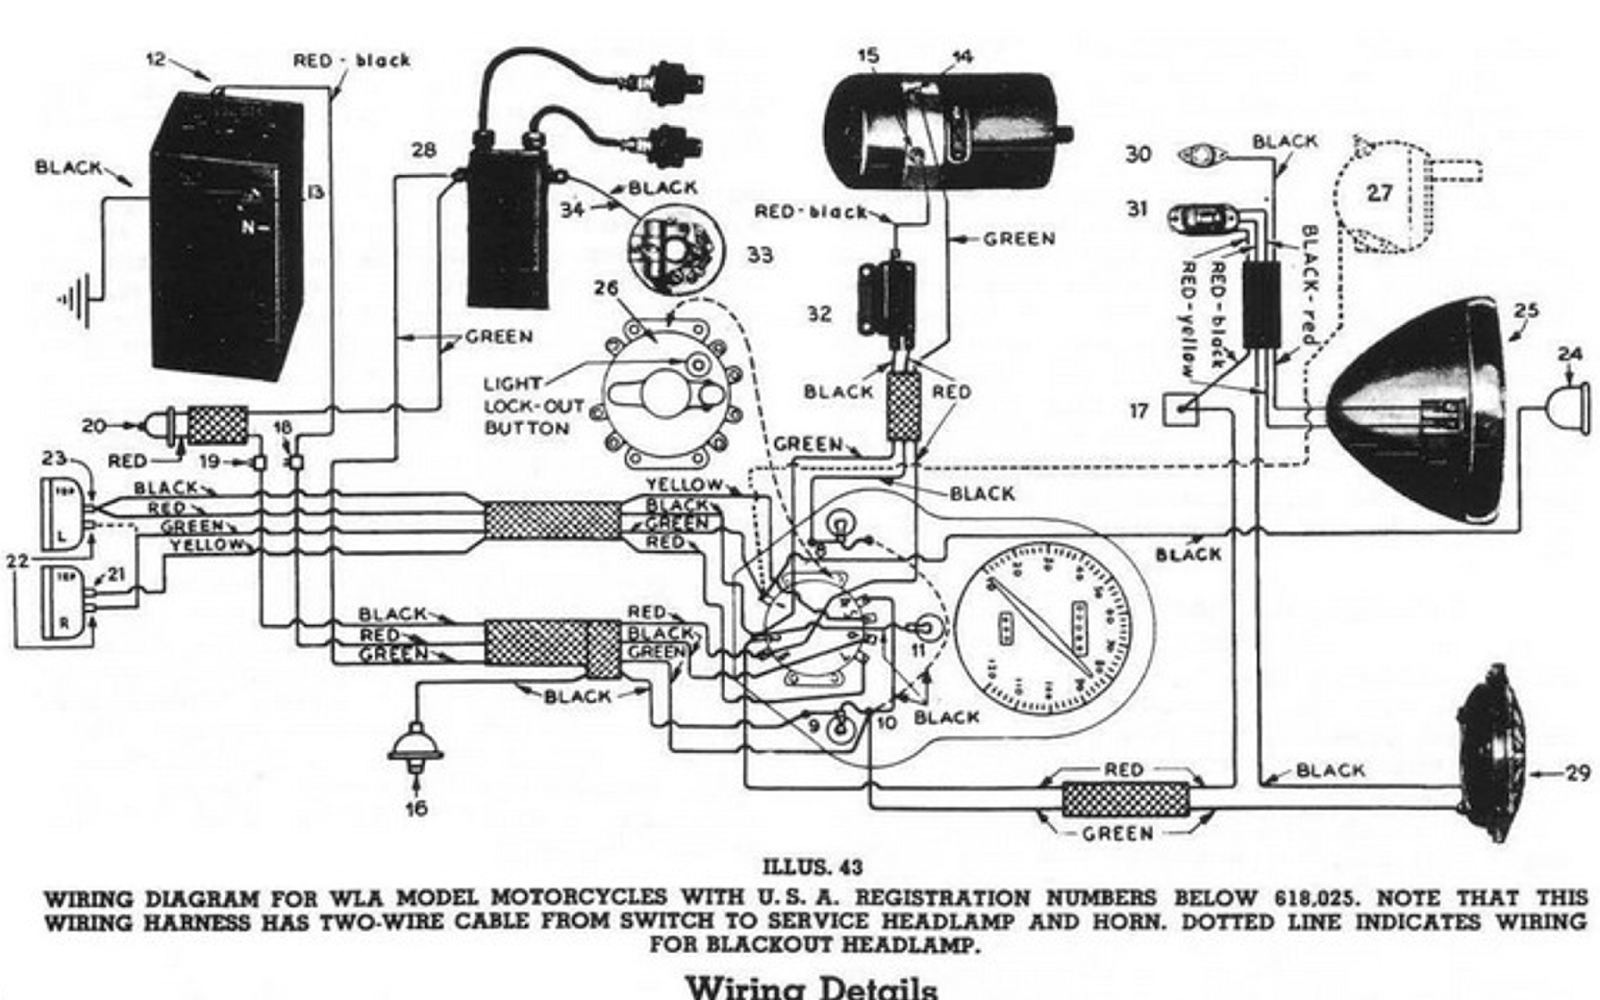 WRG-8096] Harley Rocker Wiring Diagram on